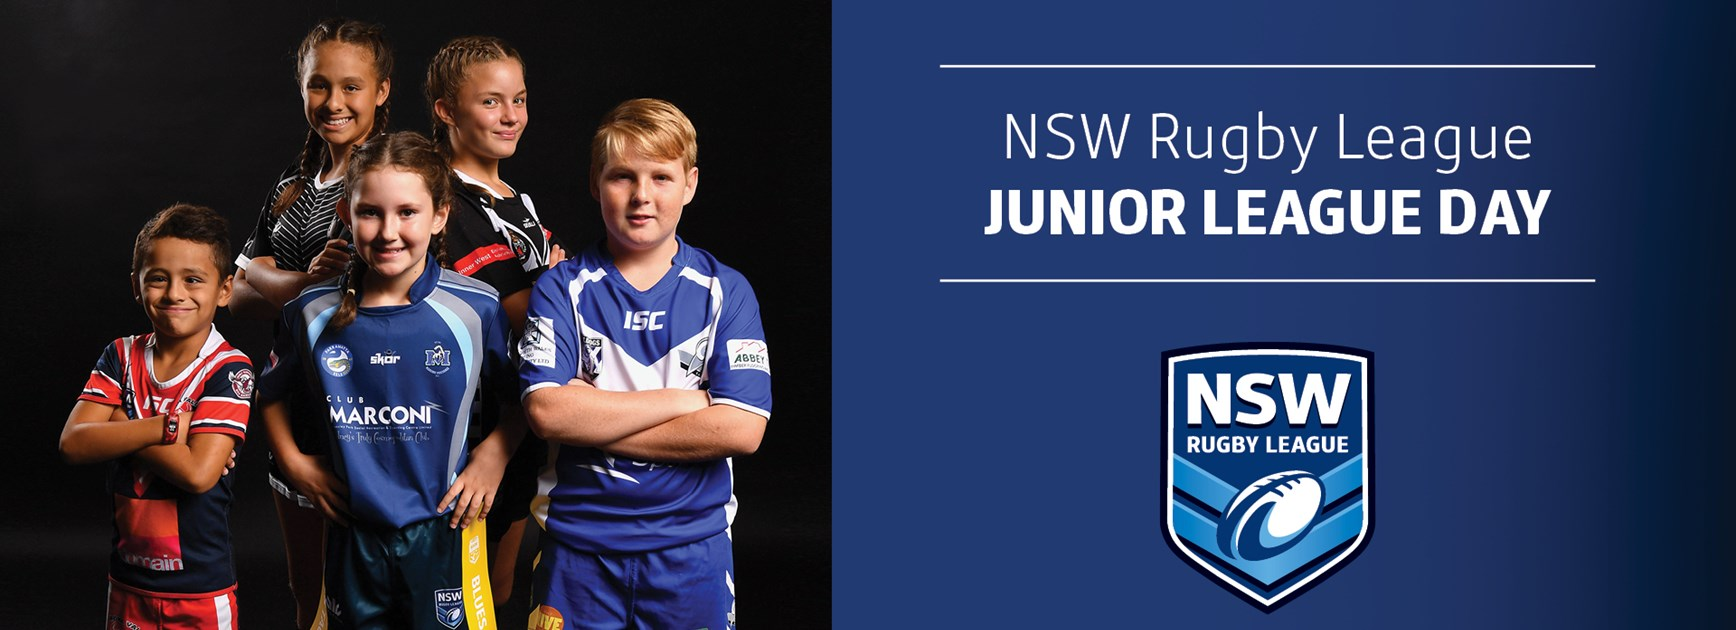 Join the fun at the NSWRL Junior League Activation Day!